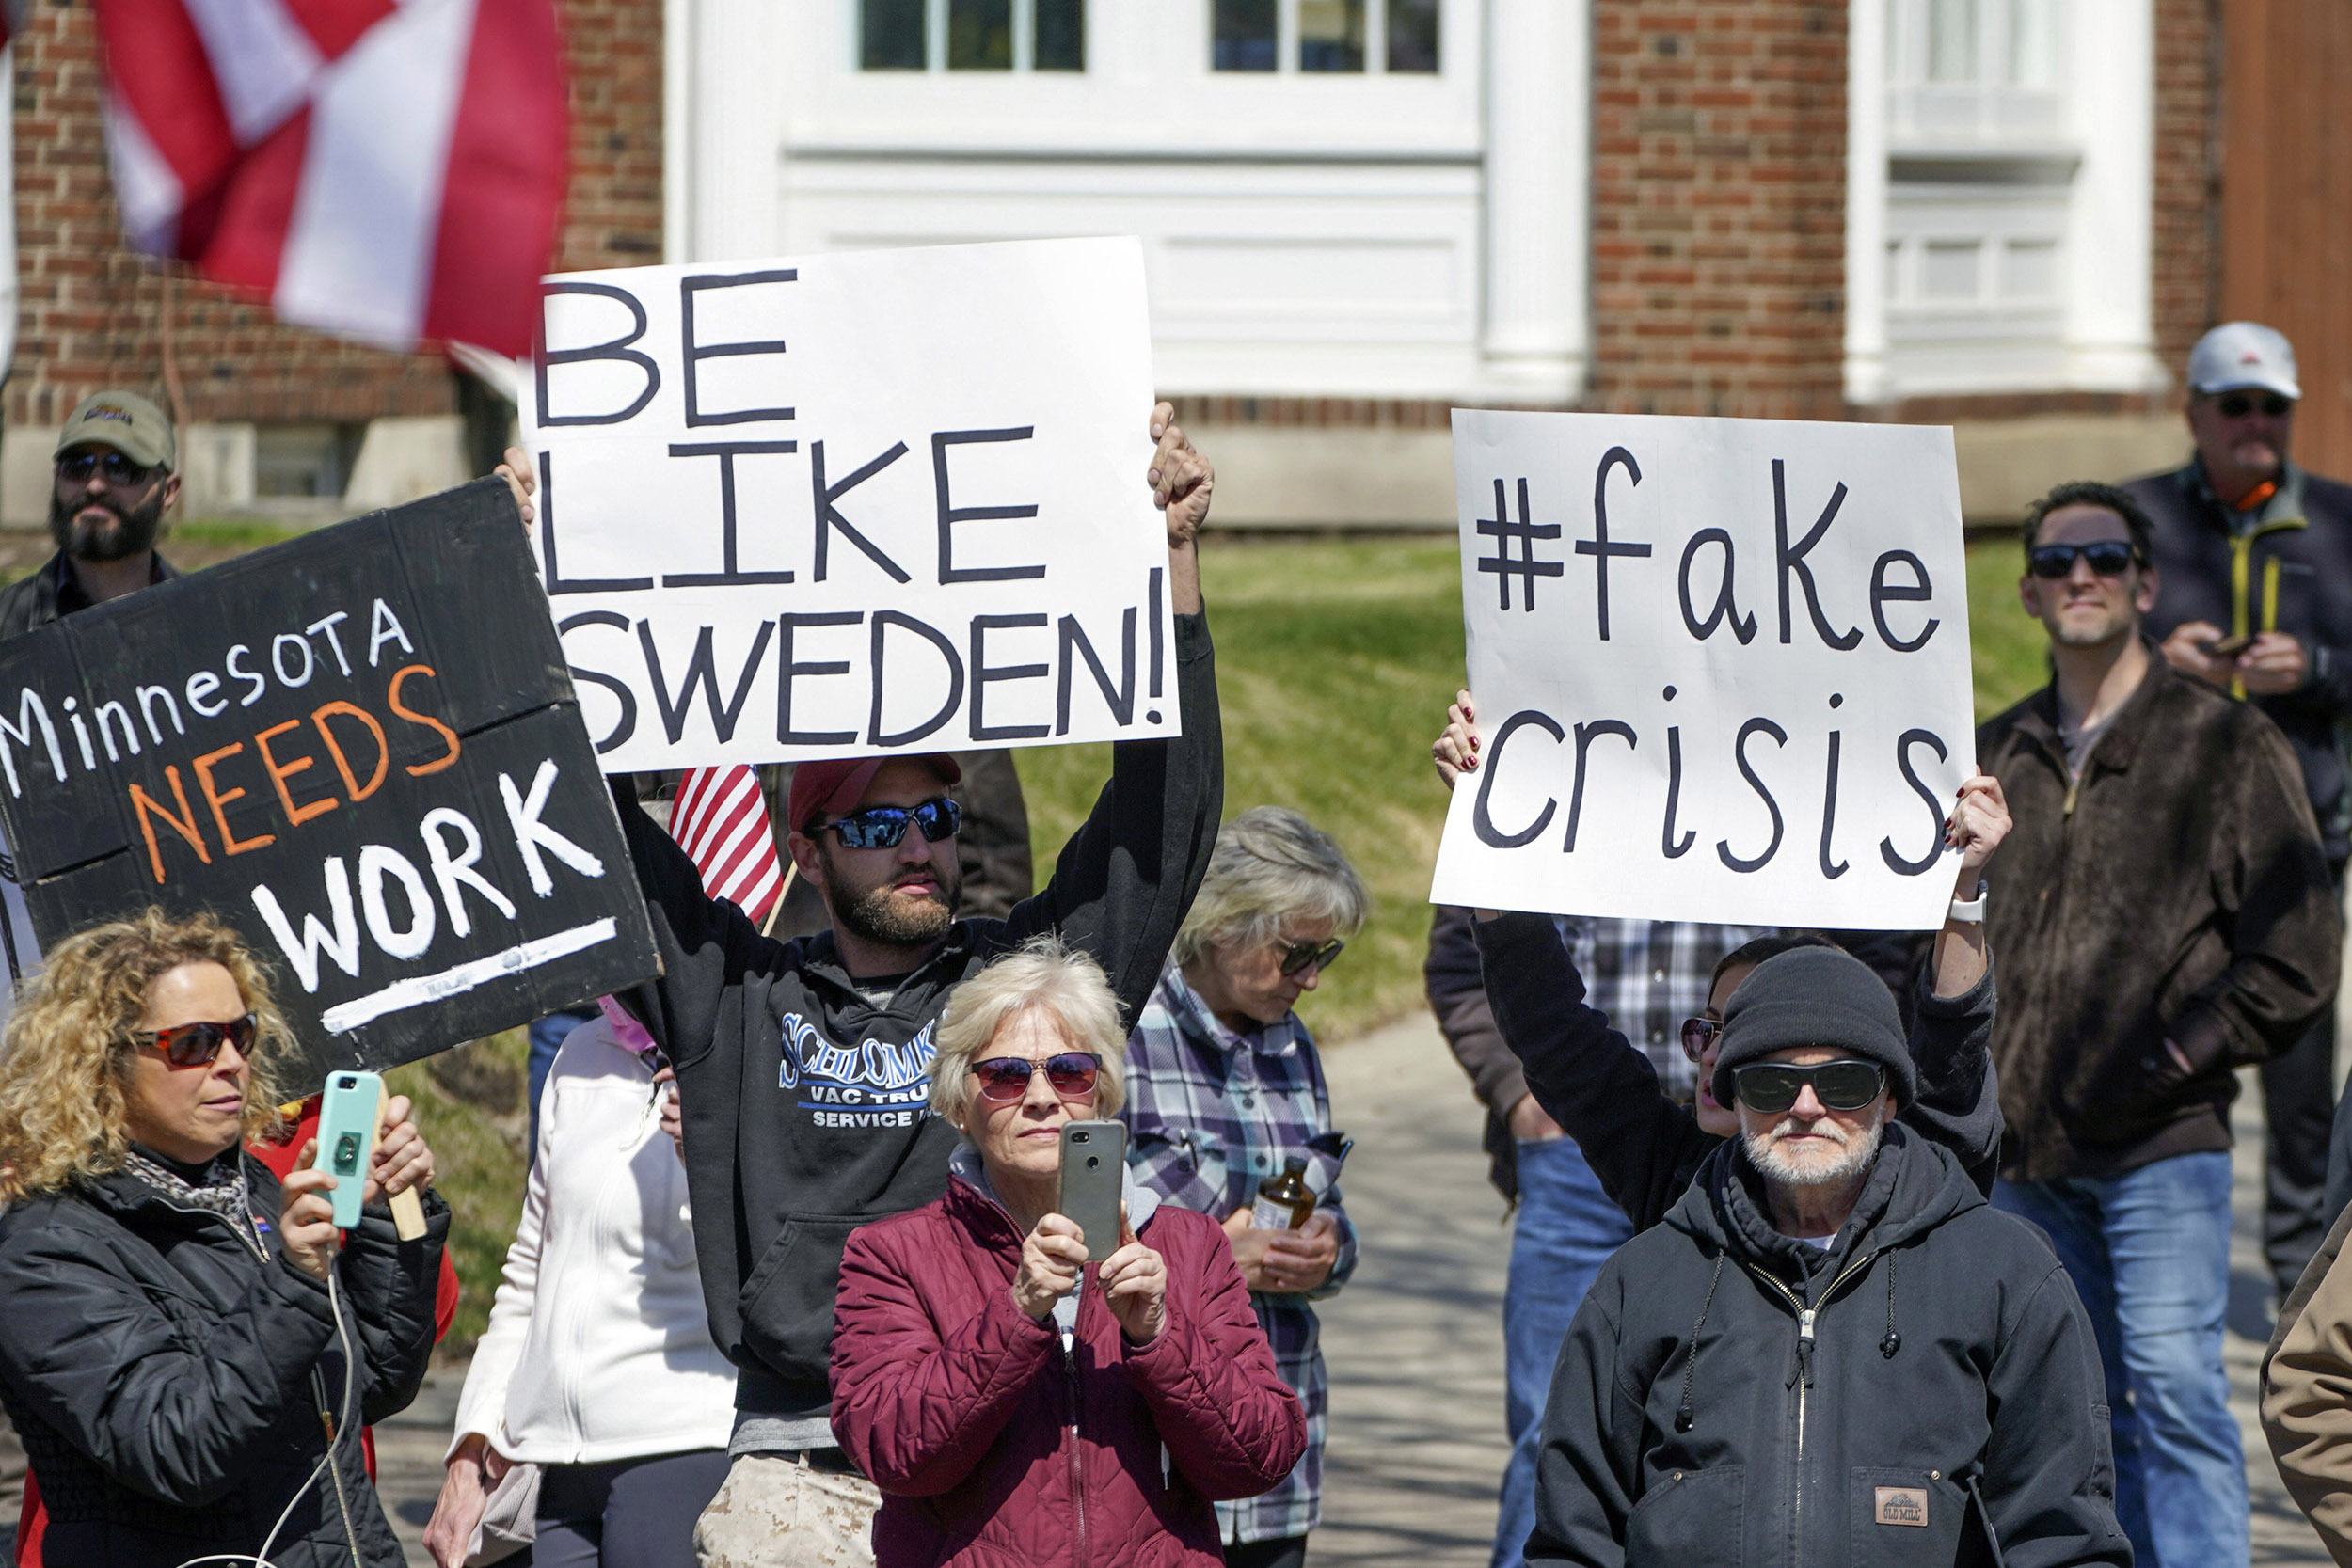 Lockdown Protesters Shout Be Like Sweden But Swedes Say They Are Missing The Point